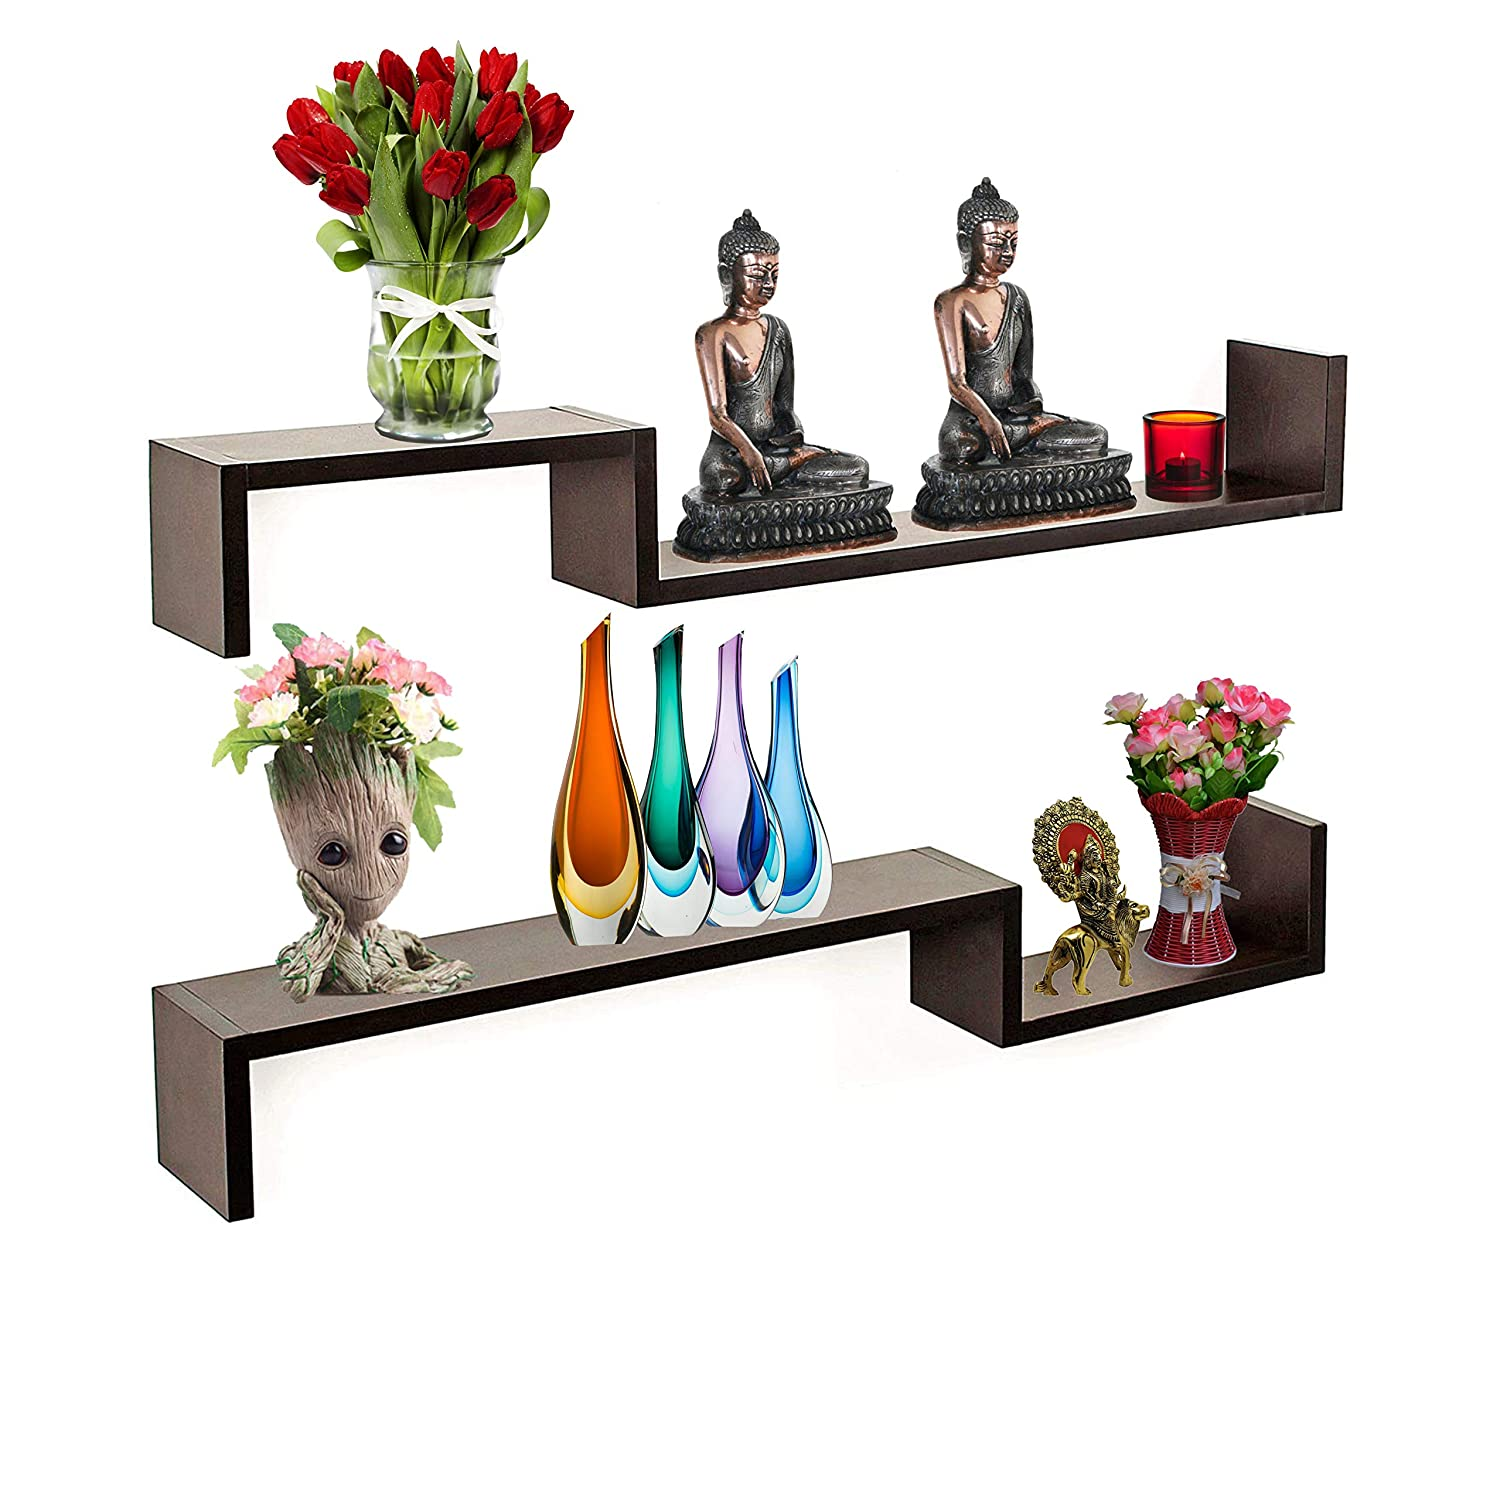 Buy wall décor rack for living room- Aart store